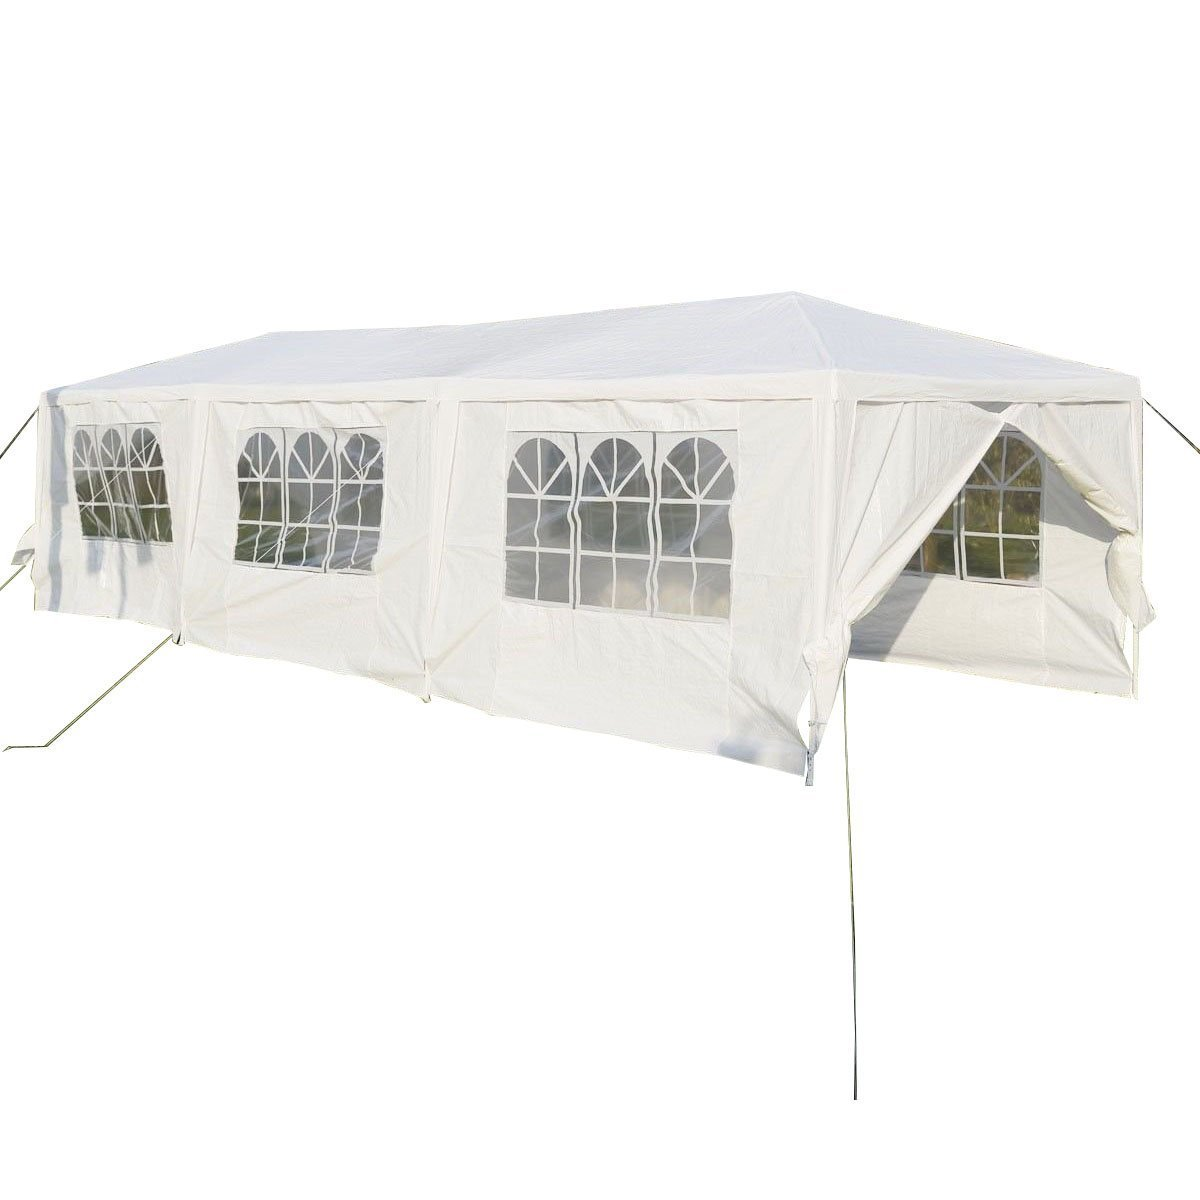 TANGKULA 10'x30' Outdoor Canopy Tent Heavy Duty Steel Frame with 6 Removable Sidewalls Waterproof Sun Snow Rain Shelter Canopy BBQ Party Wedding Event Tent Outdoor Gazebo, White